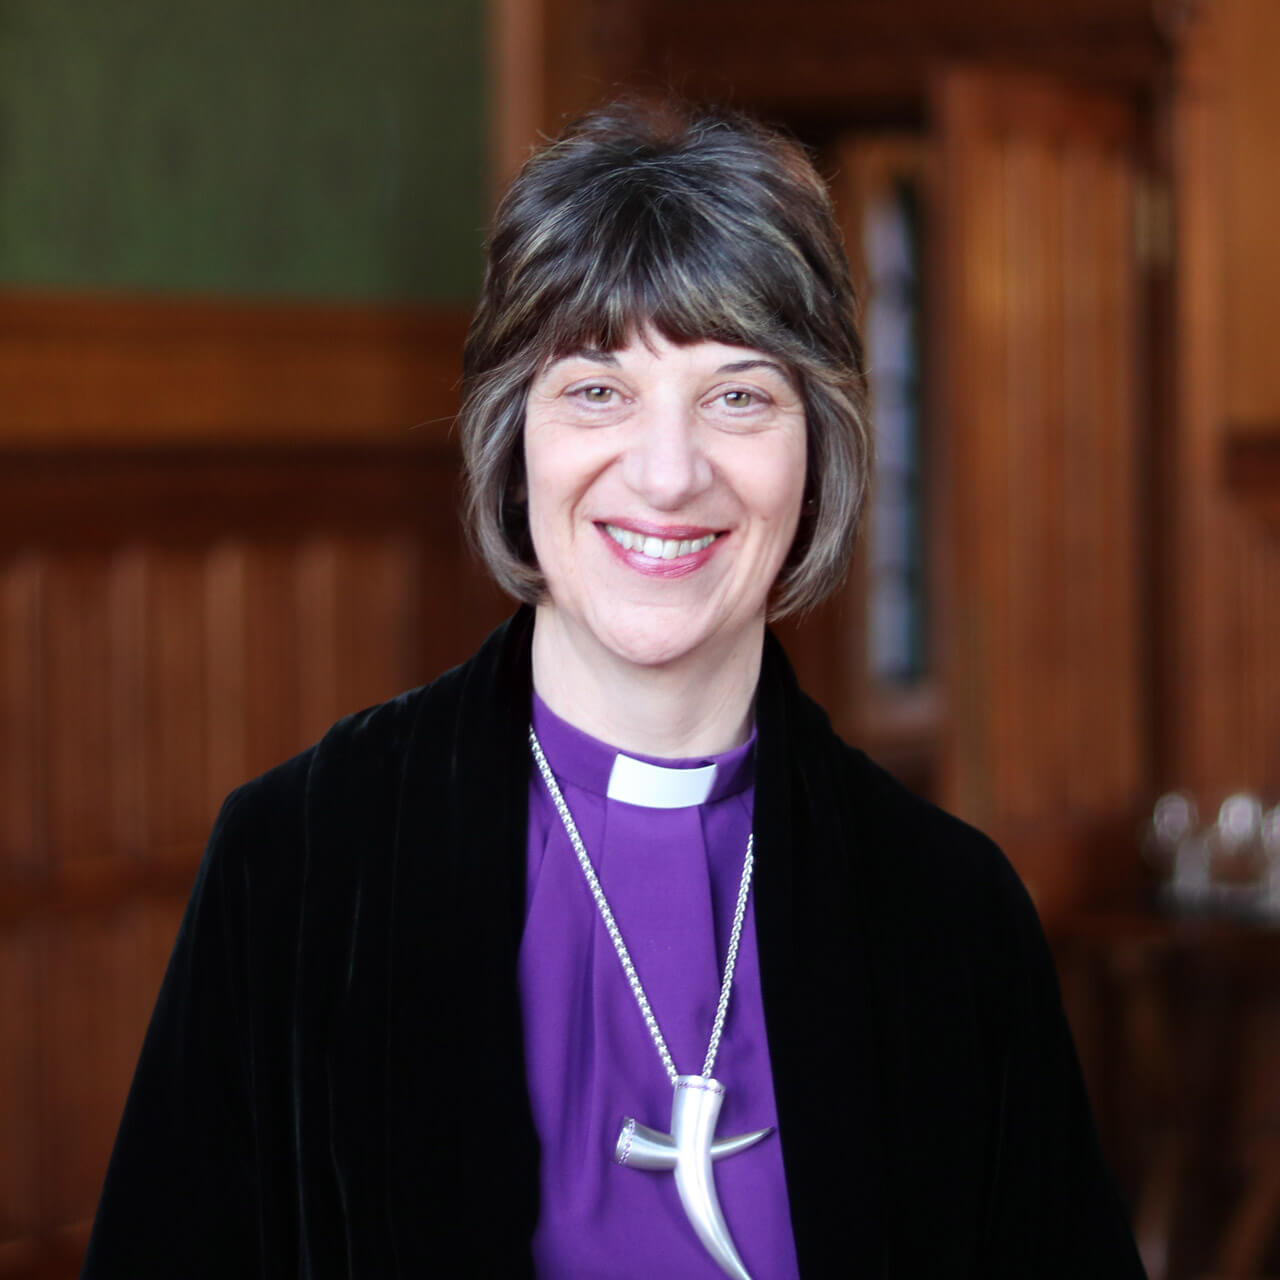 The Bishop of Gloucester, the Right Revd Rachel Treweek